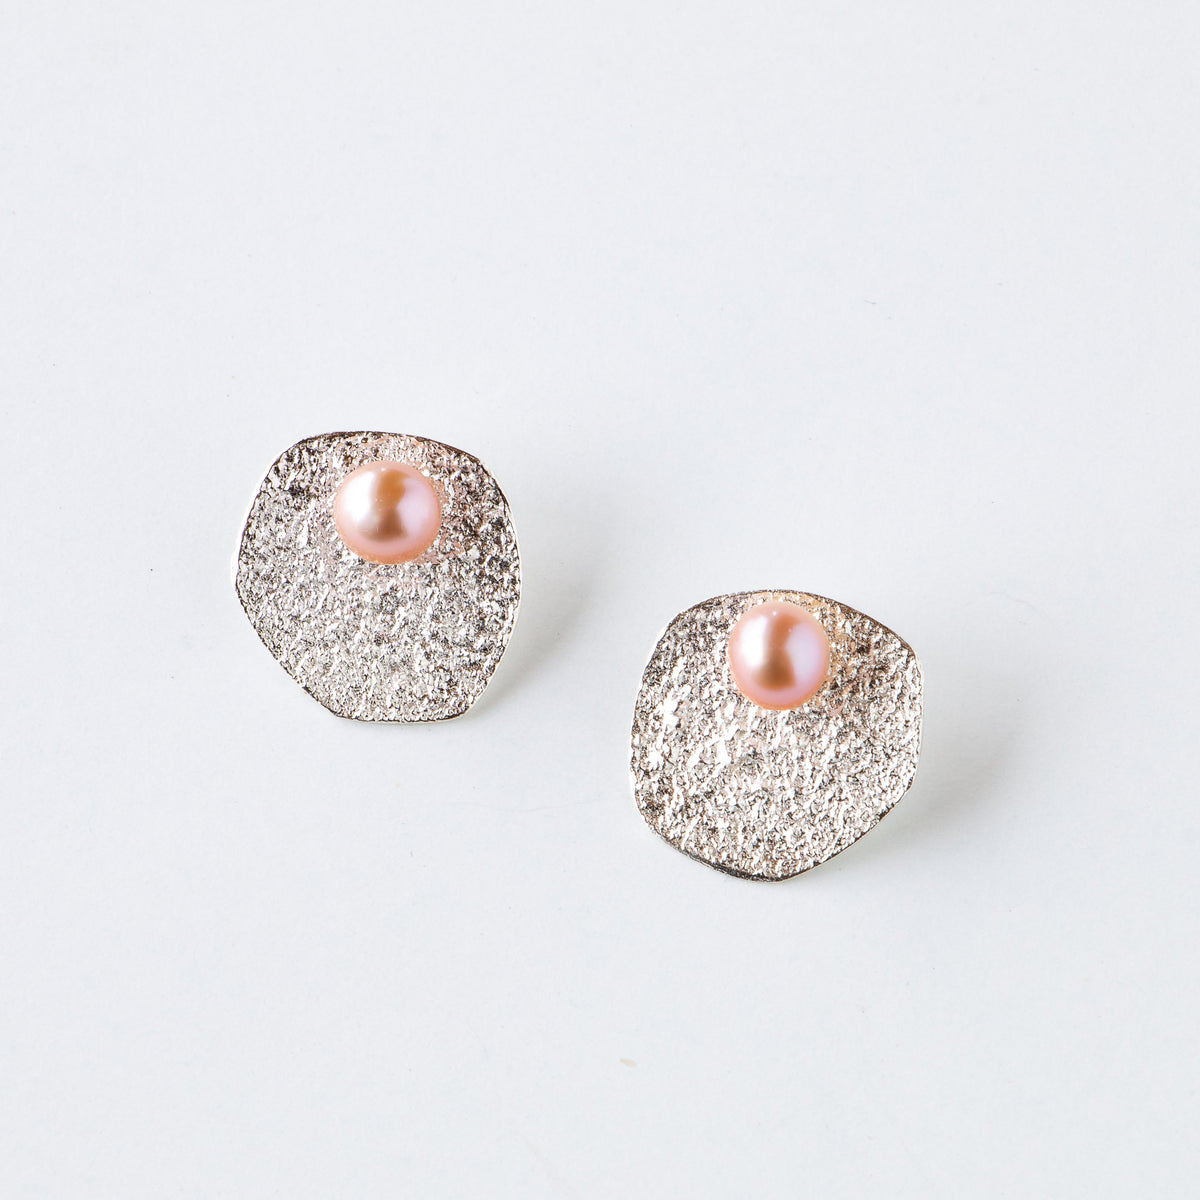 Silver & Pink Pearl Ear Jacket Earrings - Sold by Chic & Basta